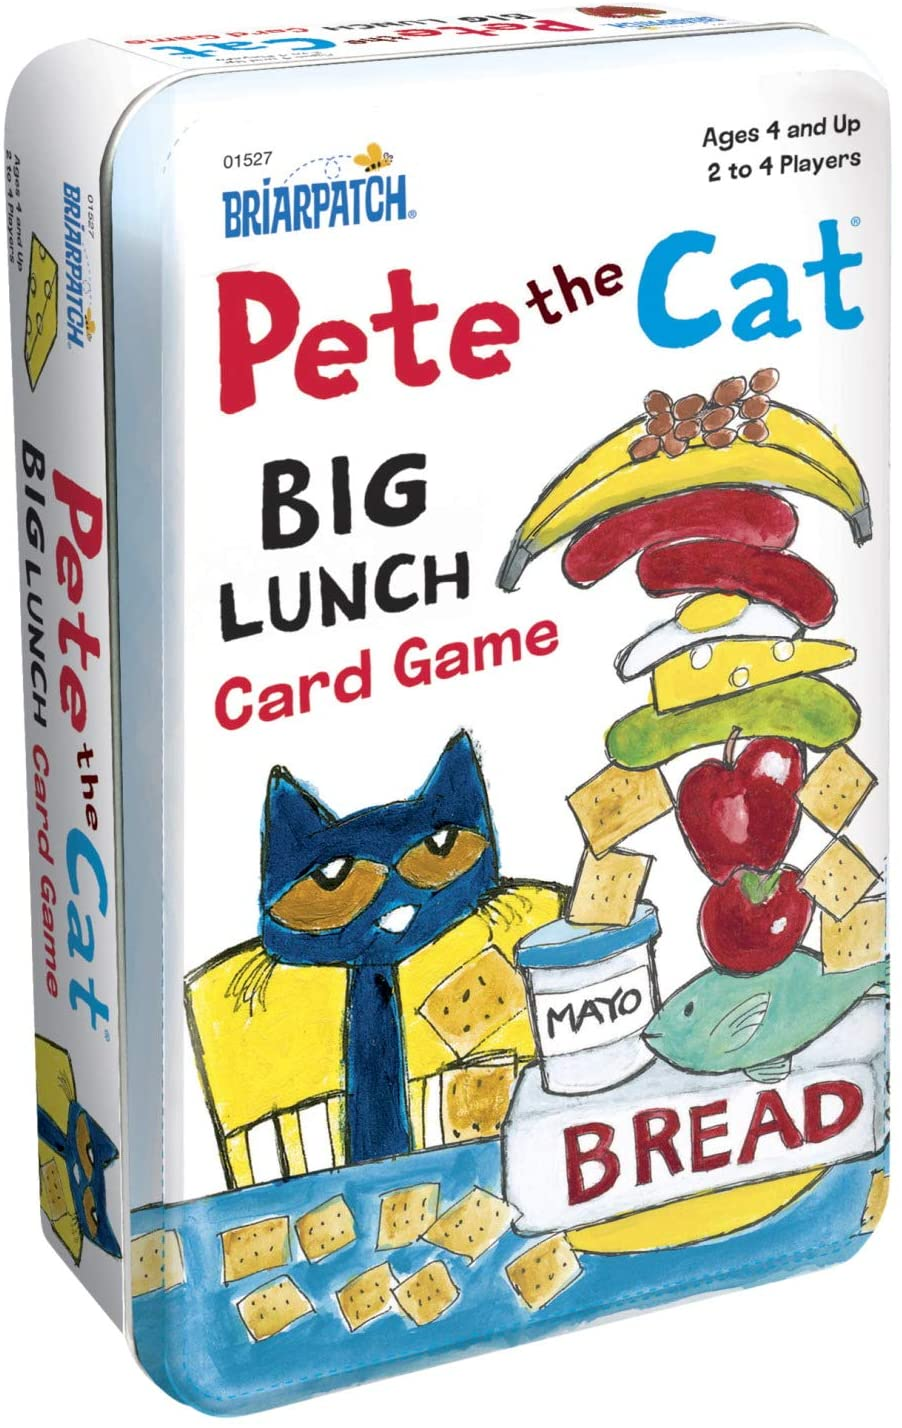 Pete the Cat Lunch Card Game Tin